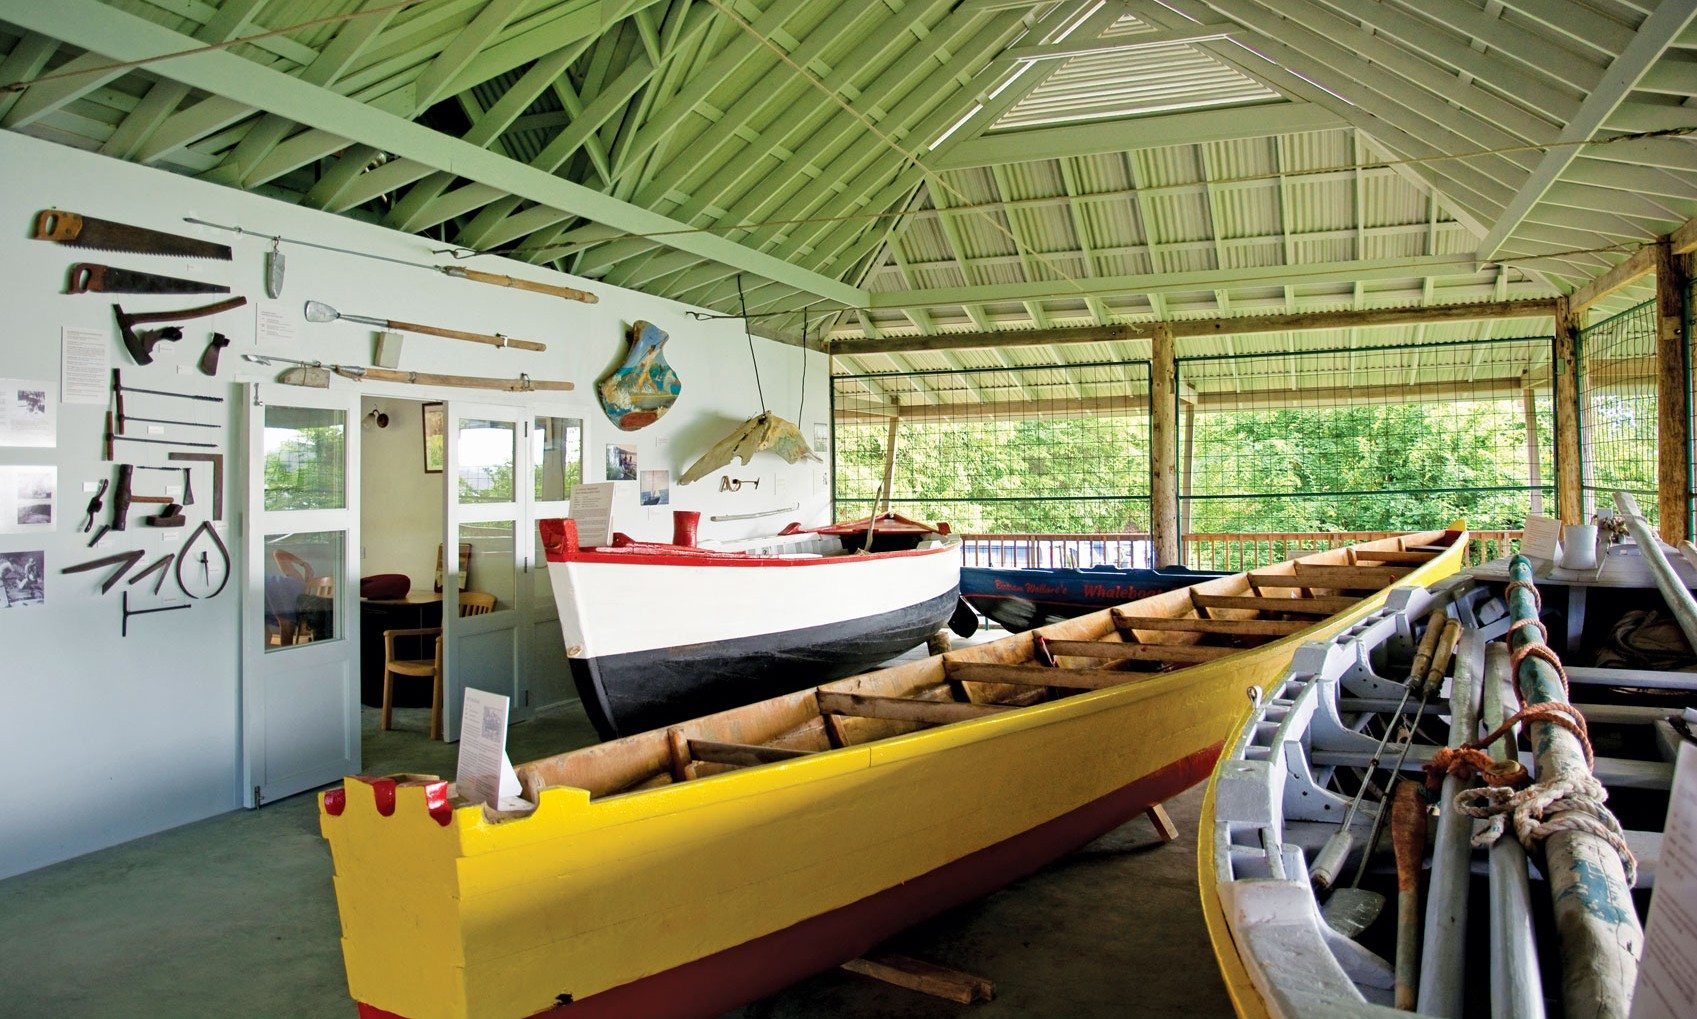 History and heritage at the Bequia Boat Museum. Photo courtesy Bequia Heritage Foundation